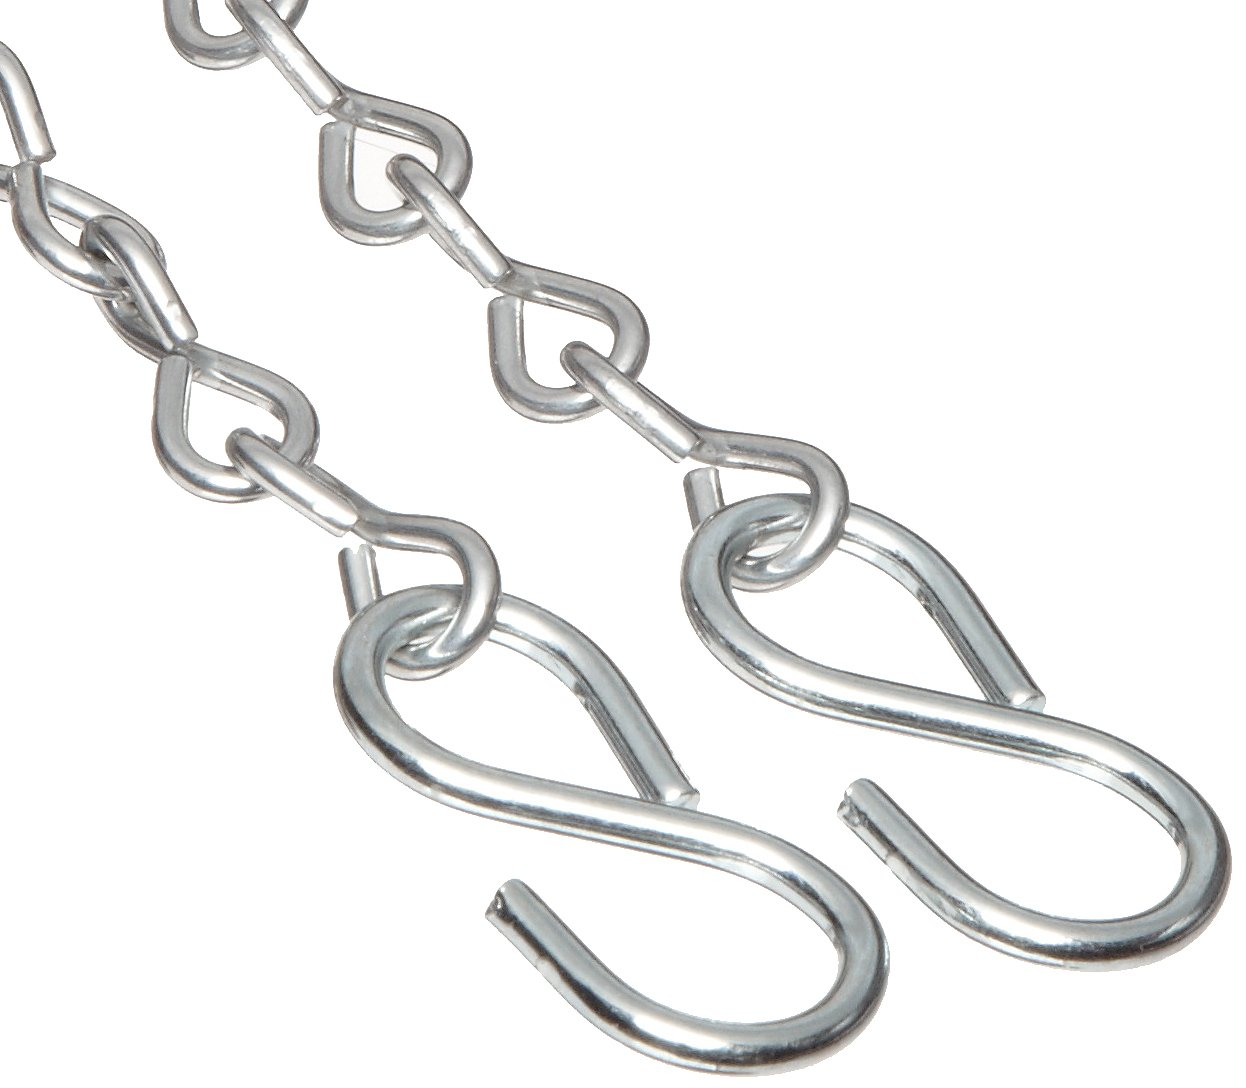 Dixon CH-SS-24 Stainless Steel Cam and Groove Hose Fitting 24 Length Jack Chain with S-Hook